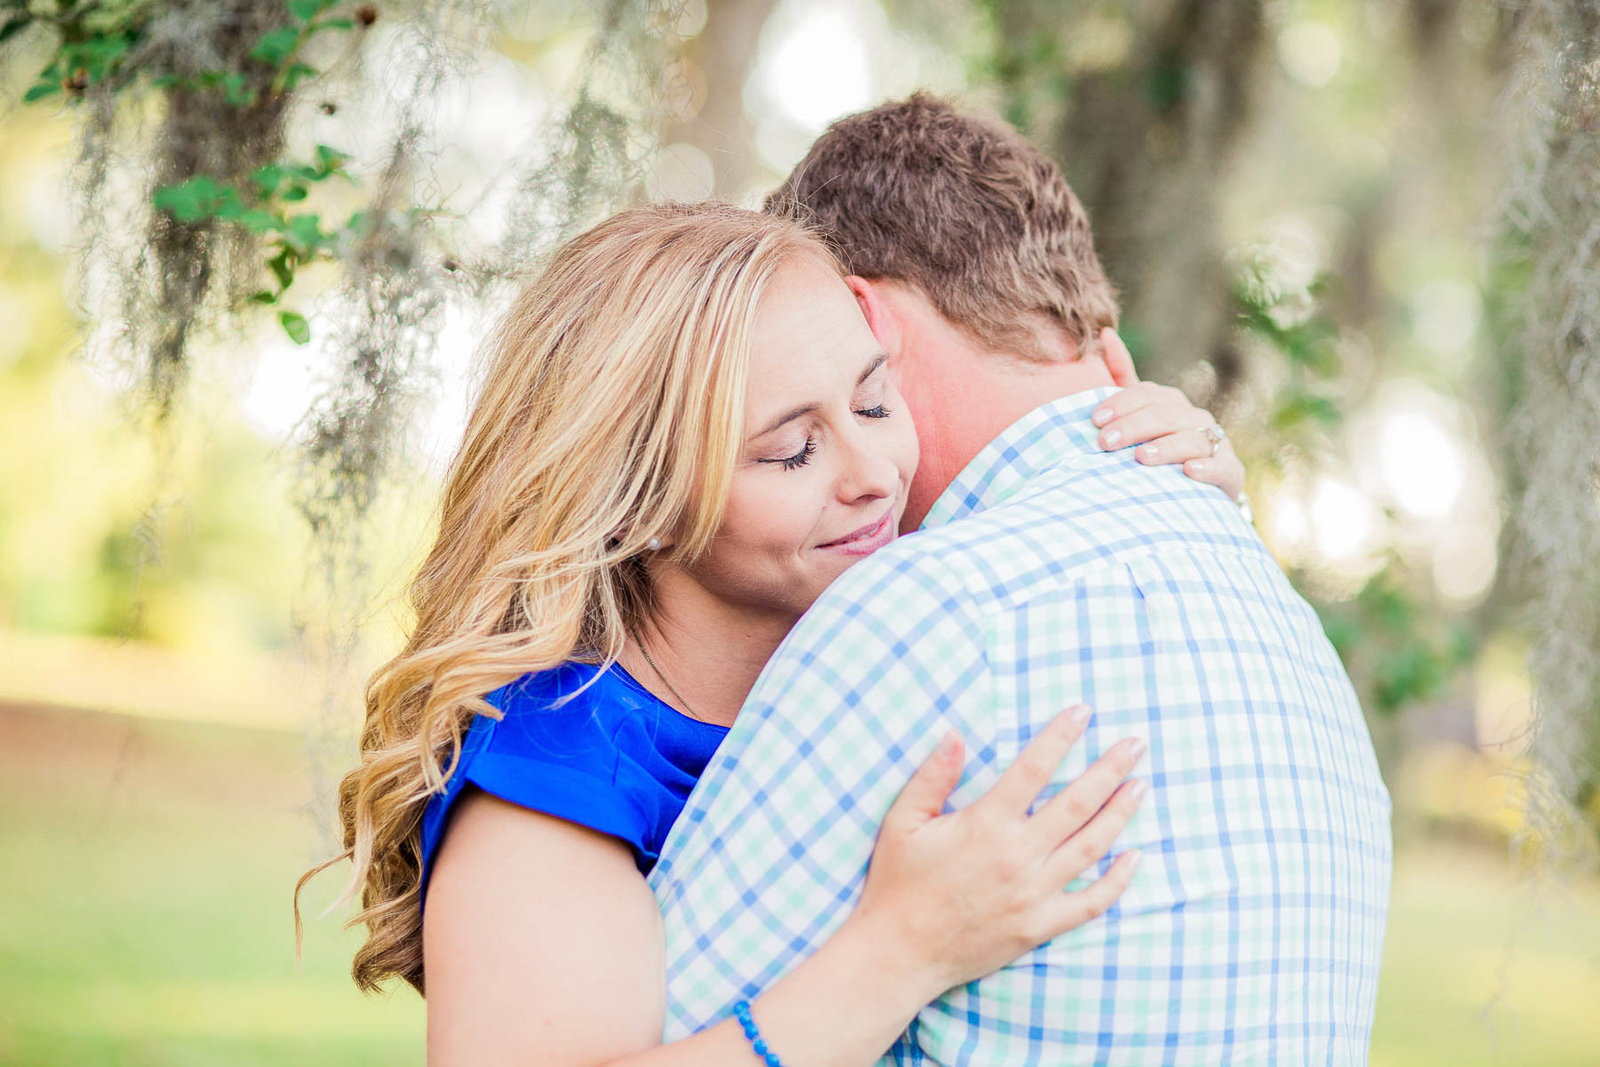 Engaged couple cuddle under a tree with spanish moss, Hampton Park, Charleston, South Carolina